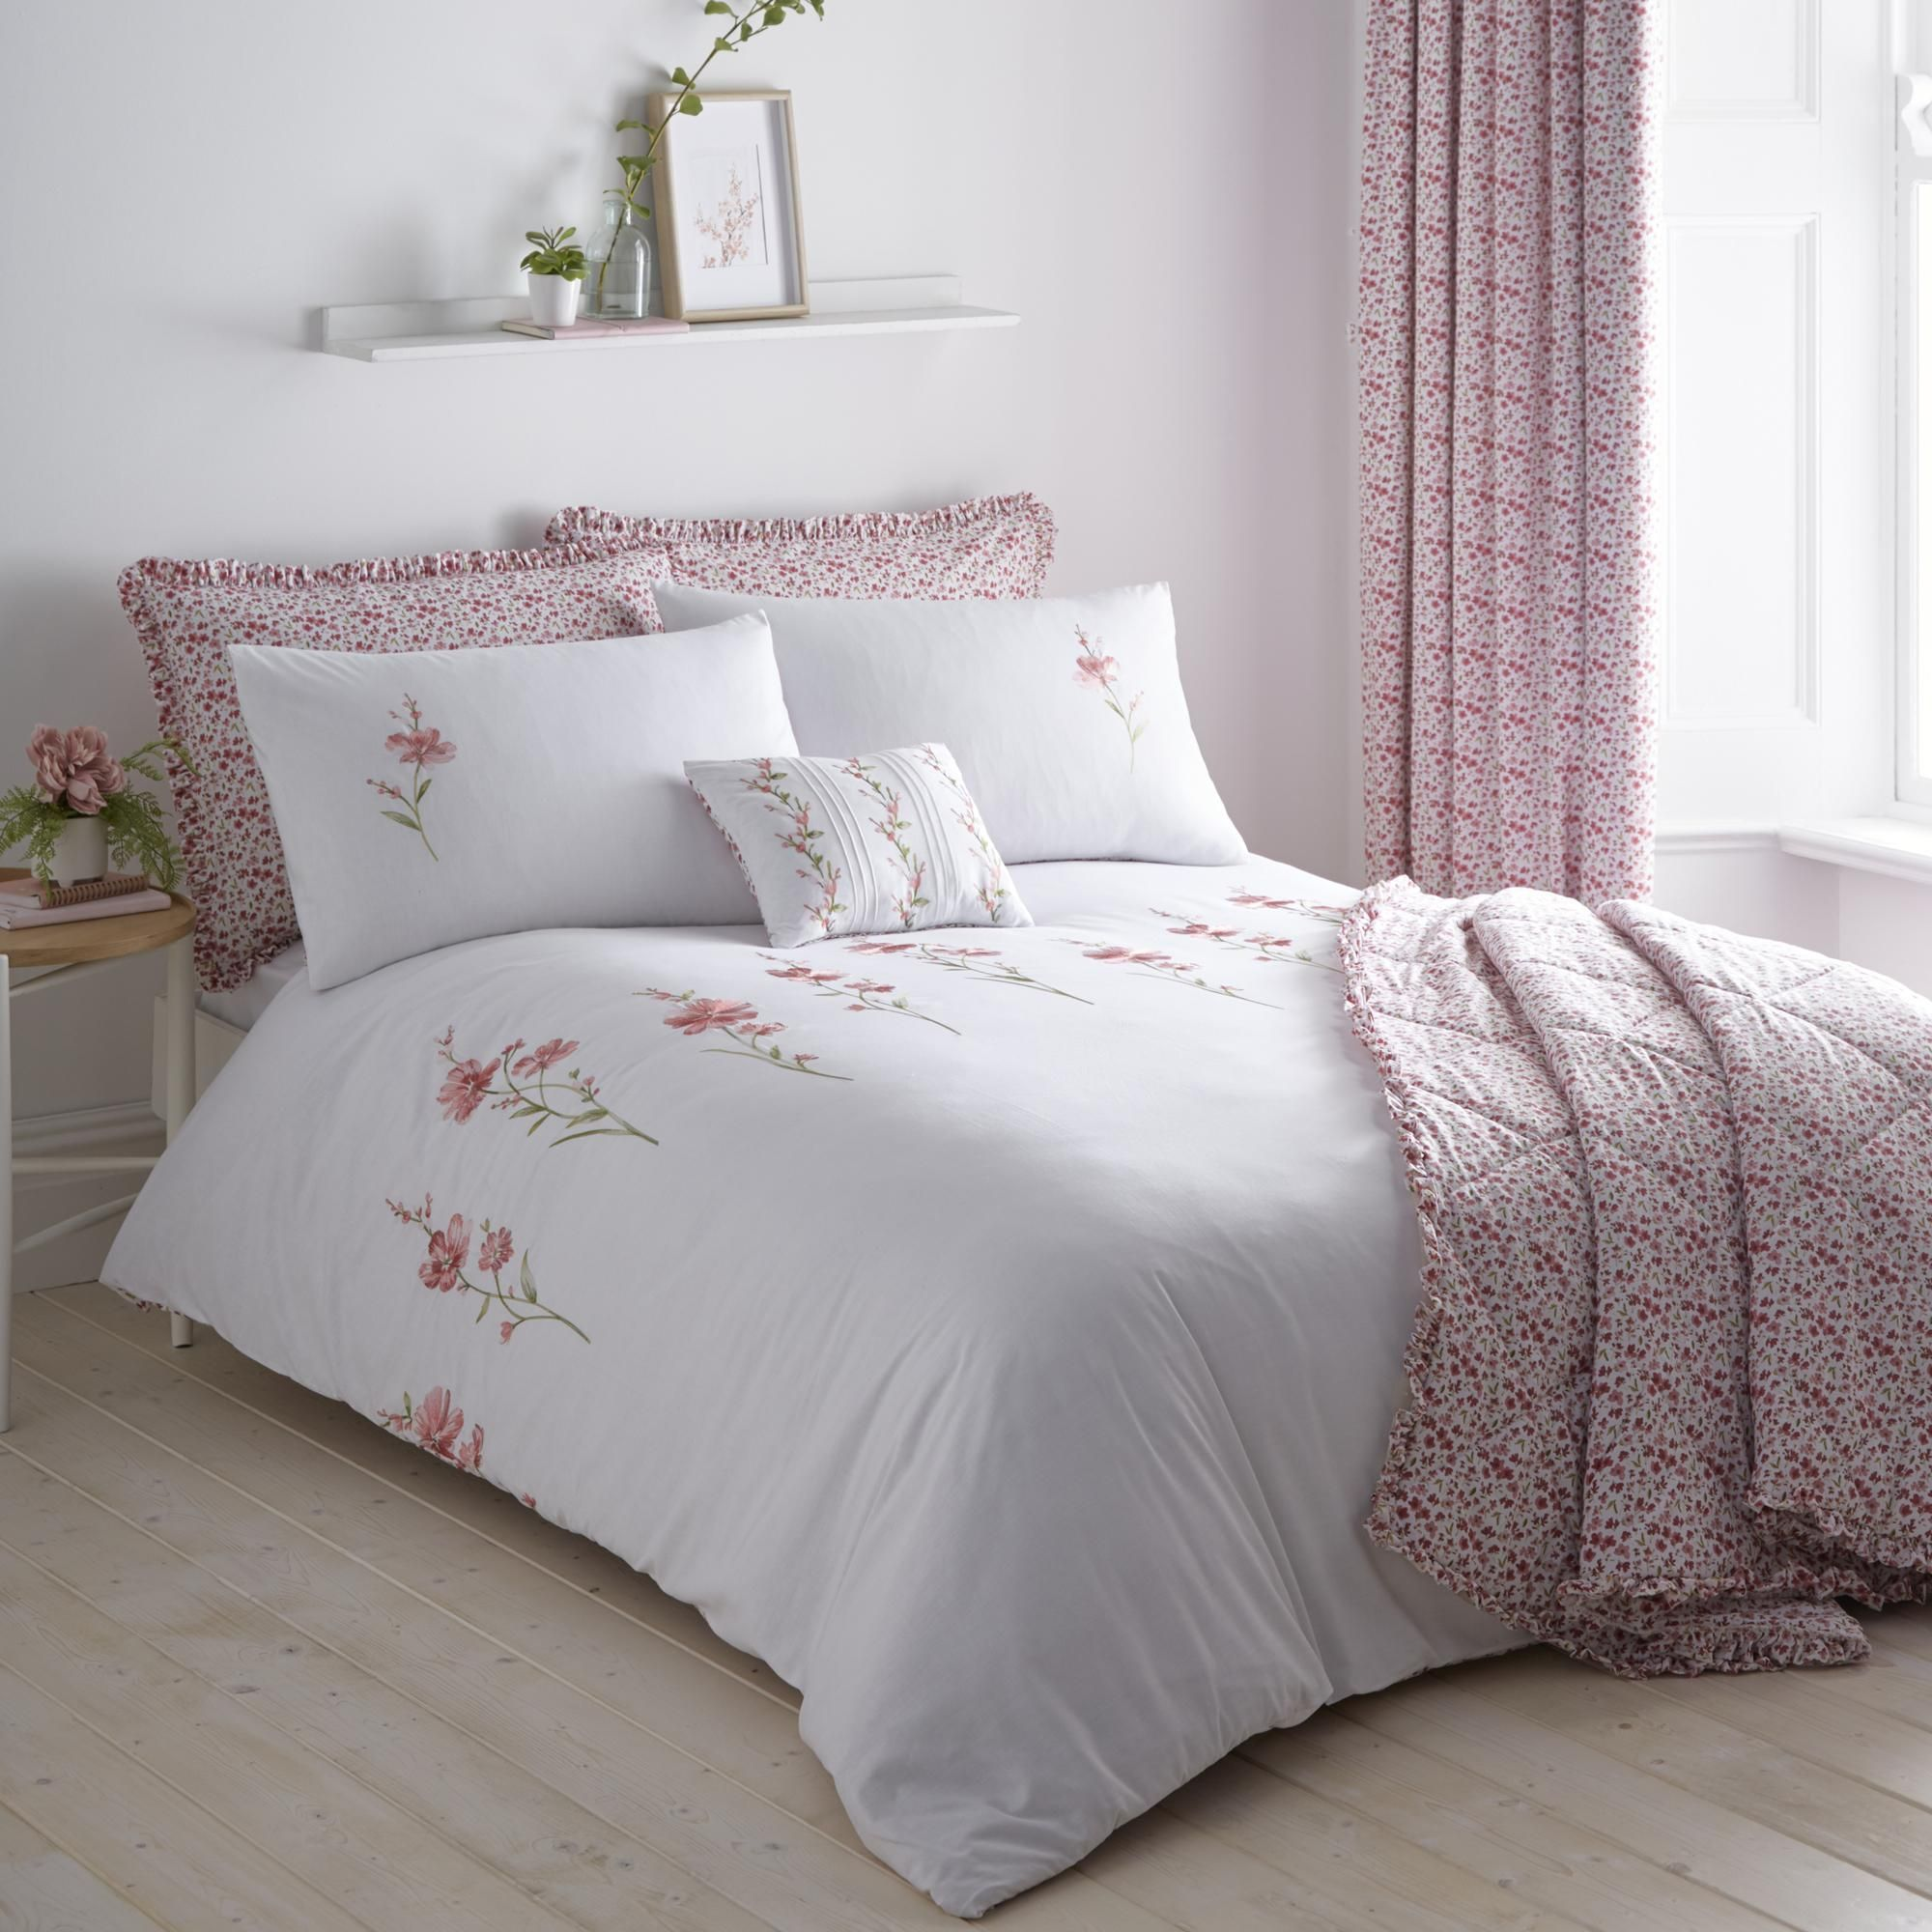 Callie Pink Floral Bedspread In 2020 Pleated Curtains Floral Bedspread Bed Spreads